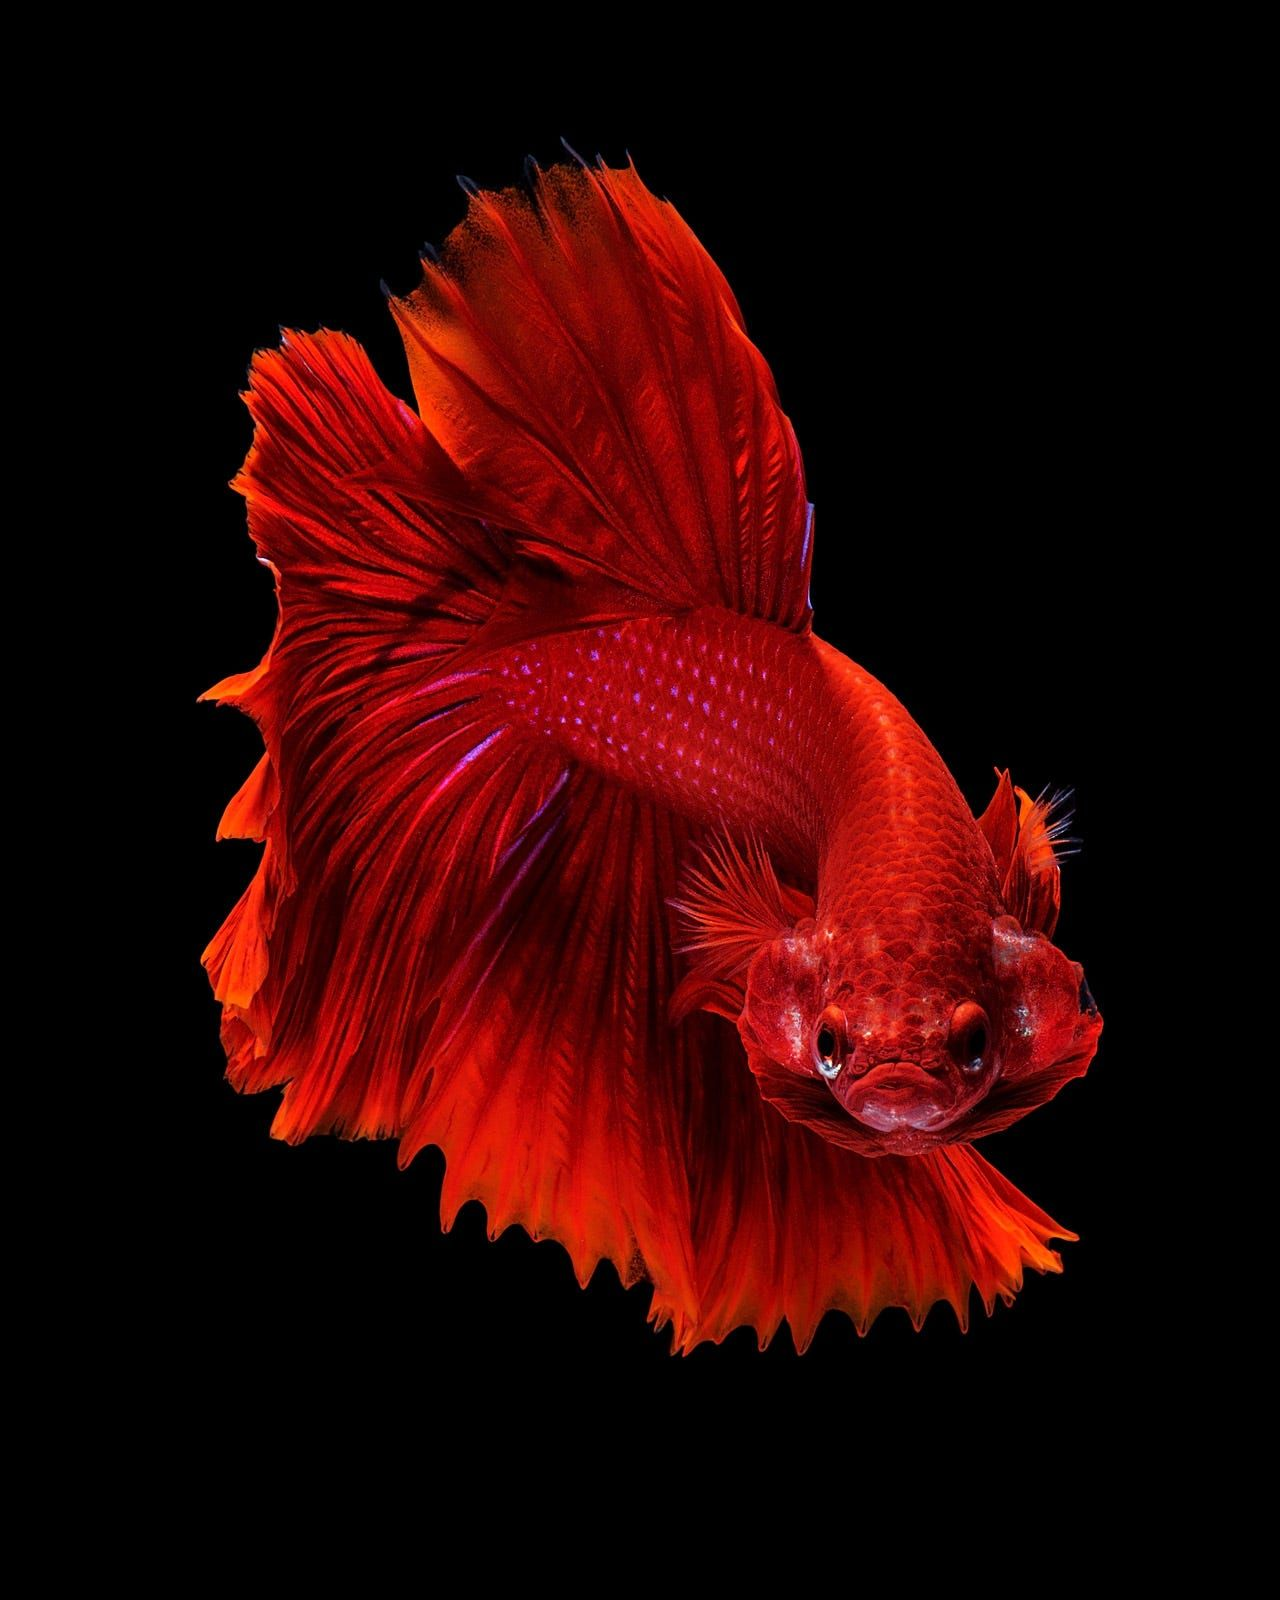 Capture The Moving Moment Of Red Siamese Fighting Fish Isolated On Black Background Dumbo Betta Fish Betta Fish Betta Betta Fish Tank